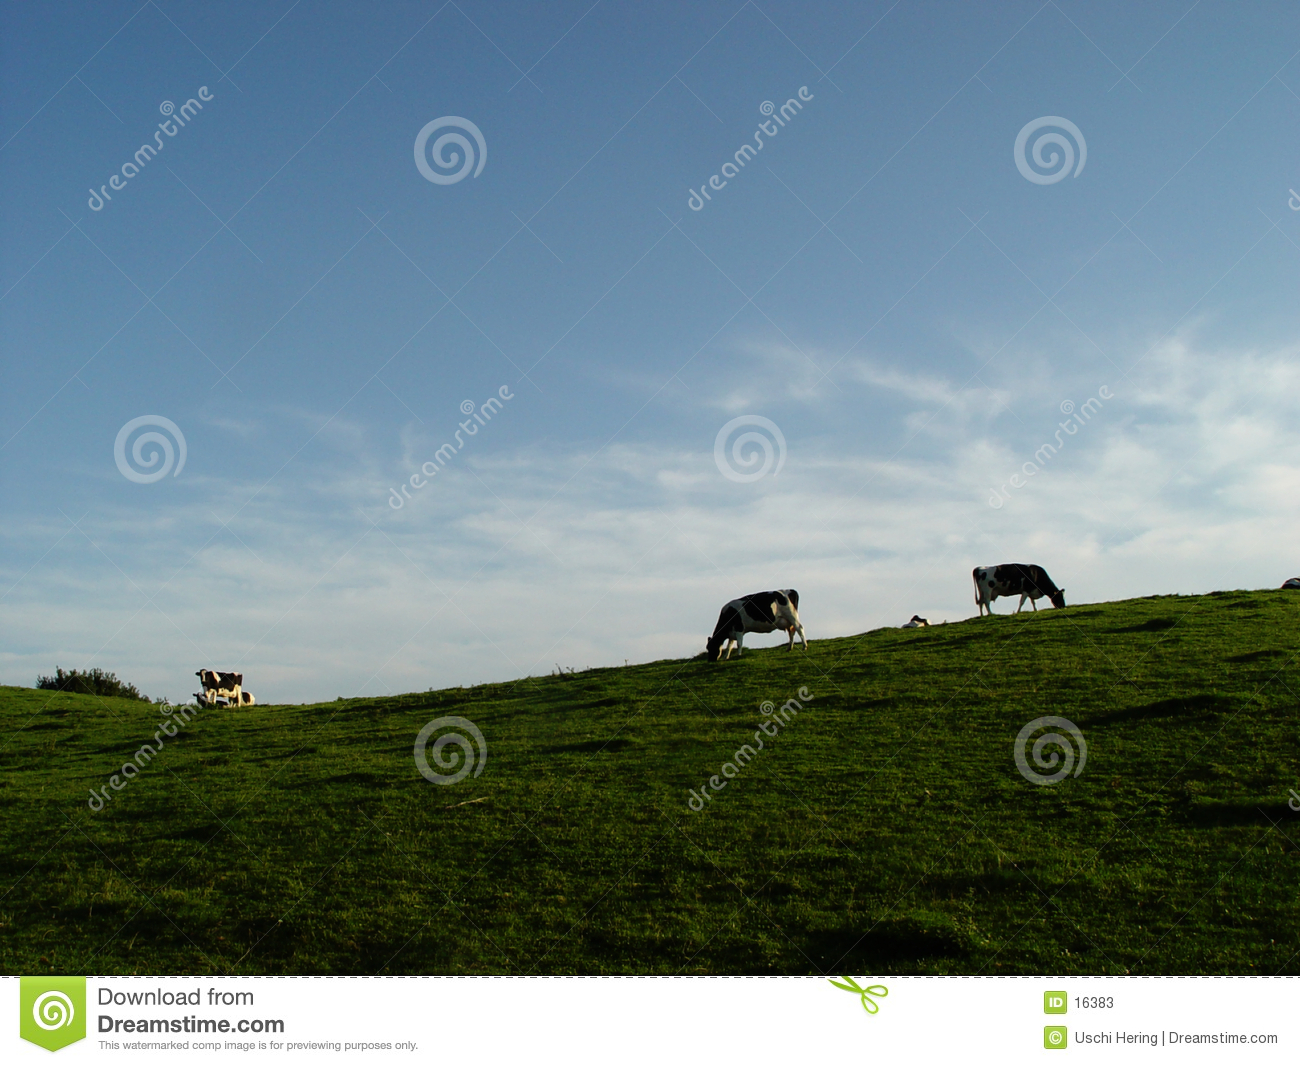 cows, meadow, sky